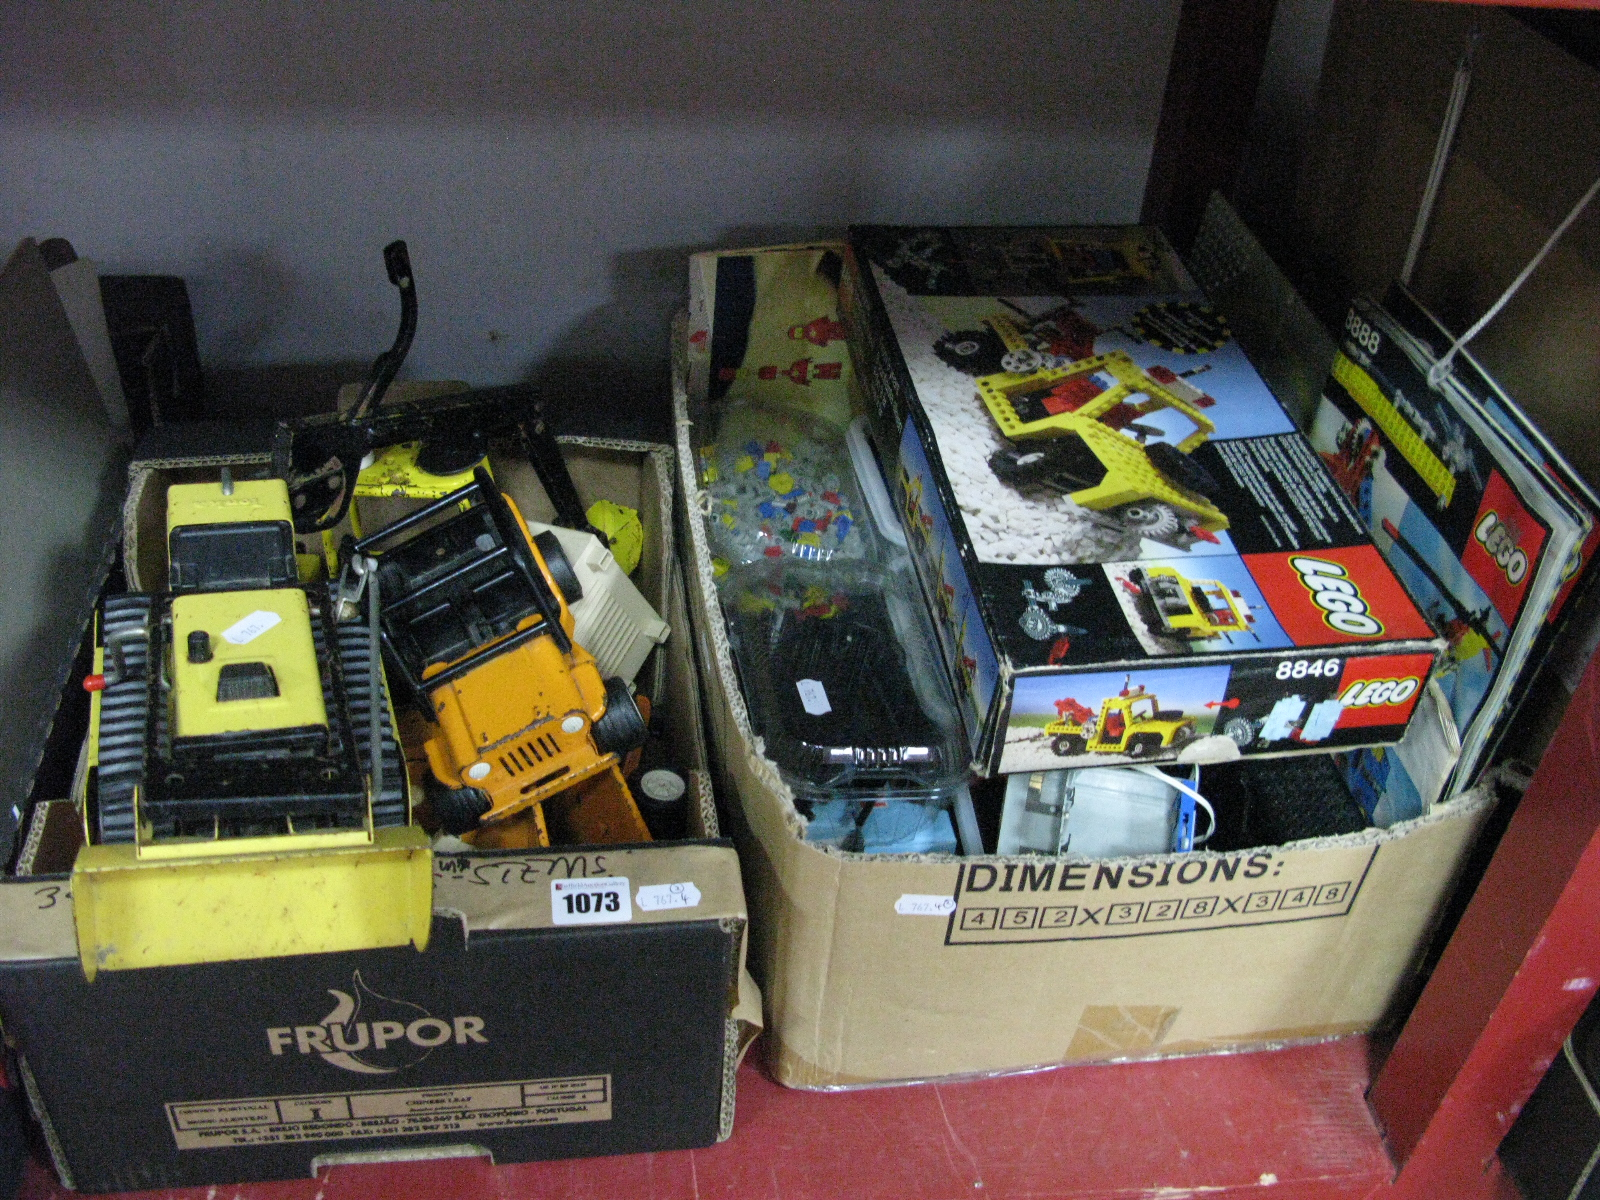 Lot 1073 - Lego Technics Pieces (loose), Lego set 8846 (unchecked for completeness), further loose Lego and